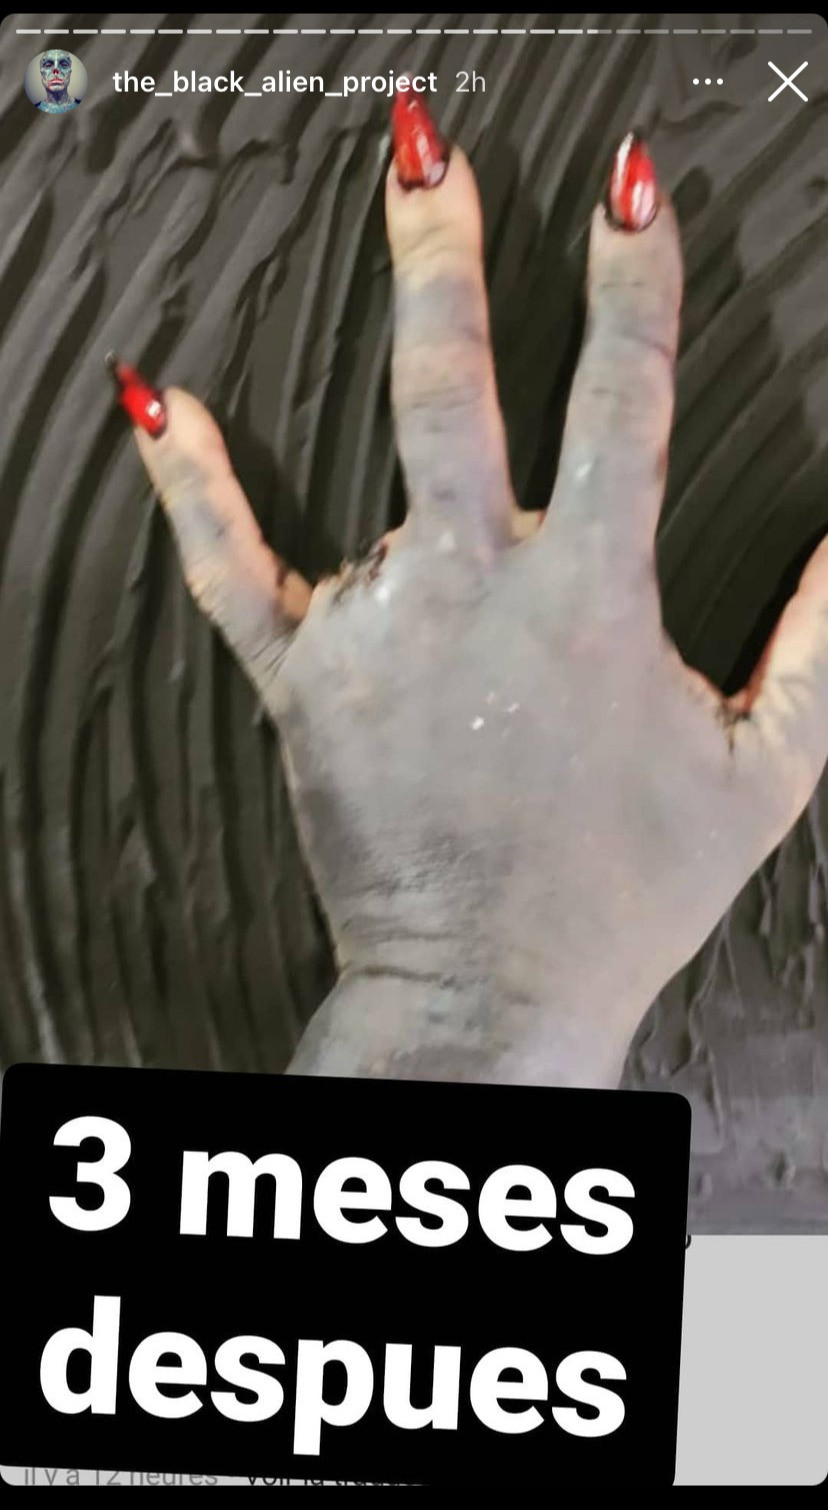 This picture shows a healed hand three months after the removal of the ring finger